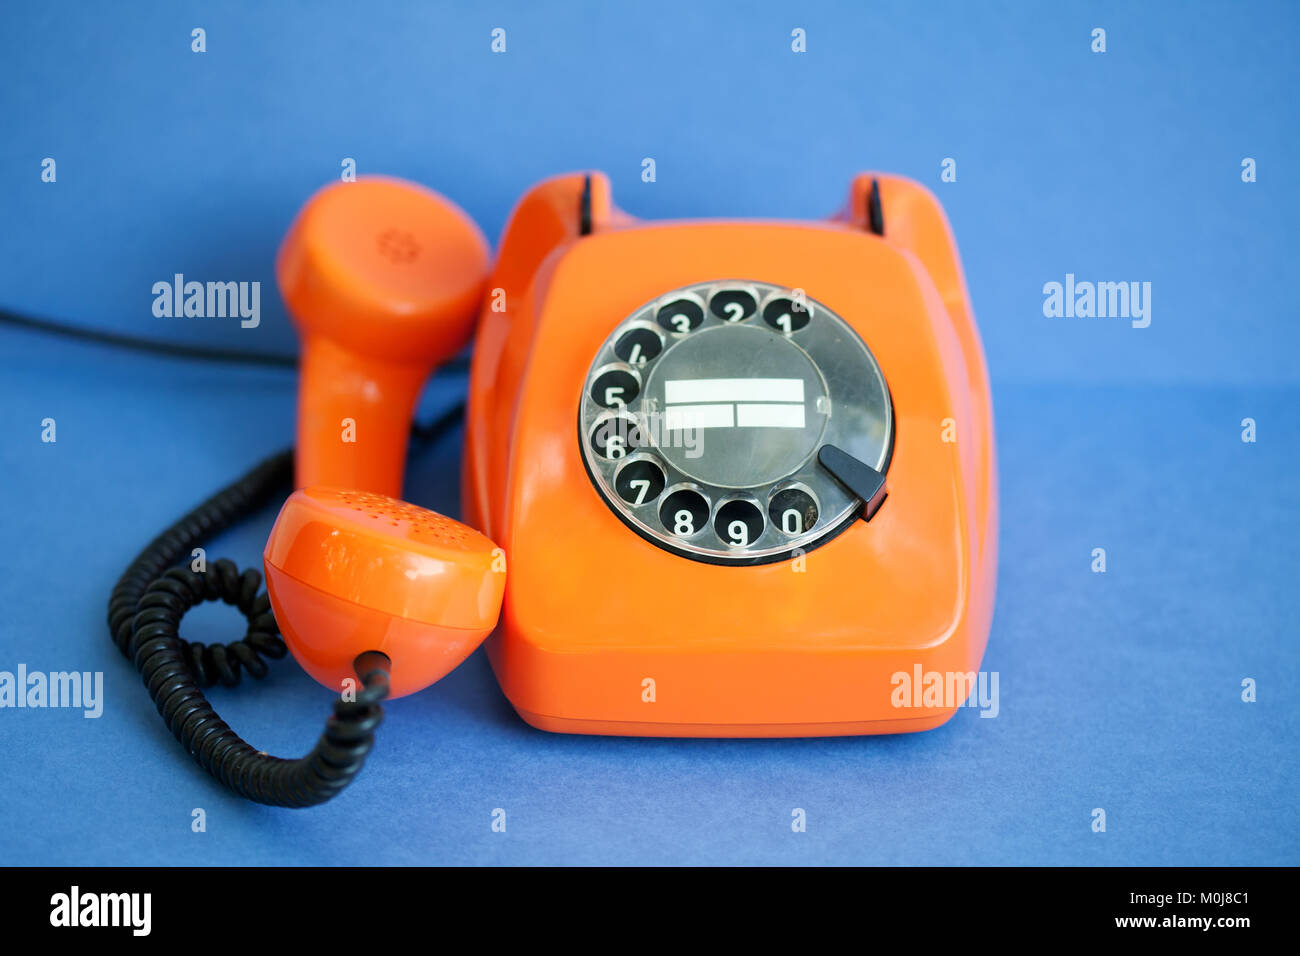 Busy retro phone orange color, handset receiver on blue background. Shallow depth field photography. Stock Photo